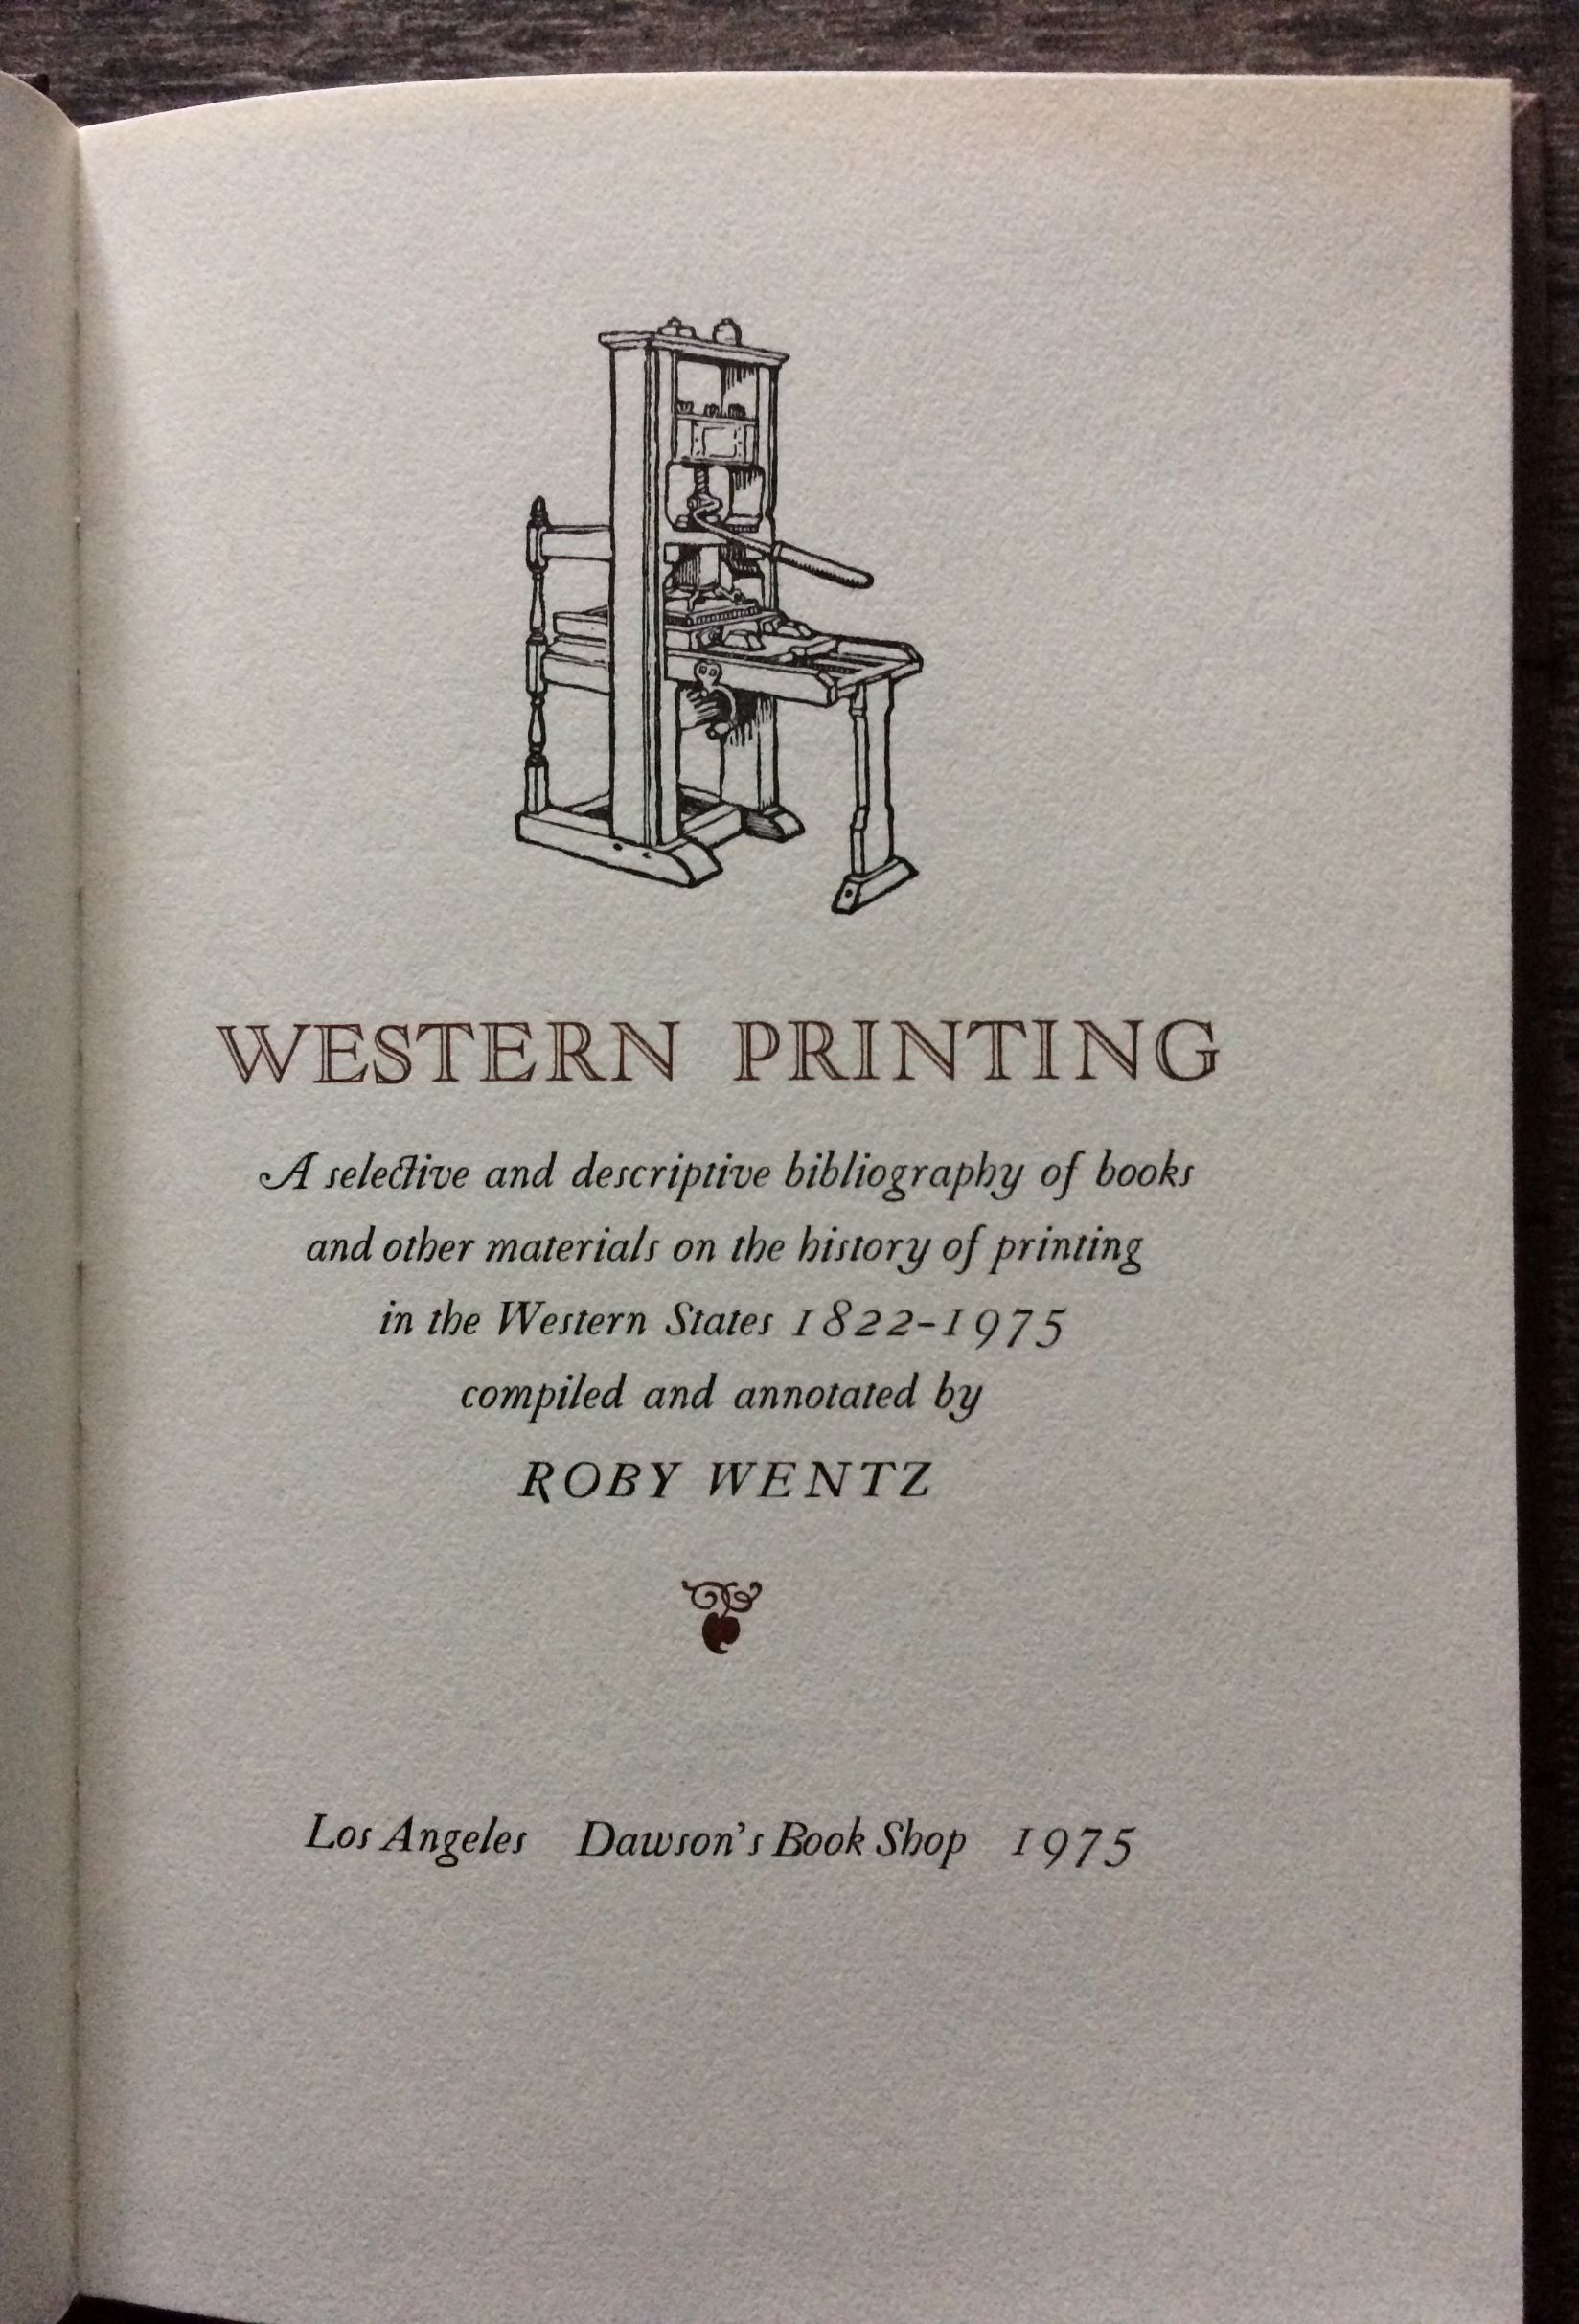 Image for Western Printing: A Selective And Descriptive Bibliography Of Books And Other Materials On The History Of Printing In The Western States 1822-1975.